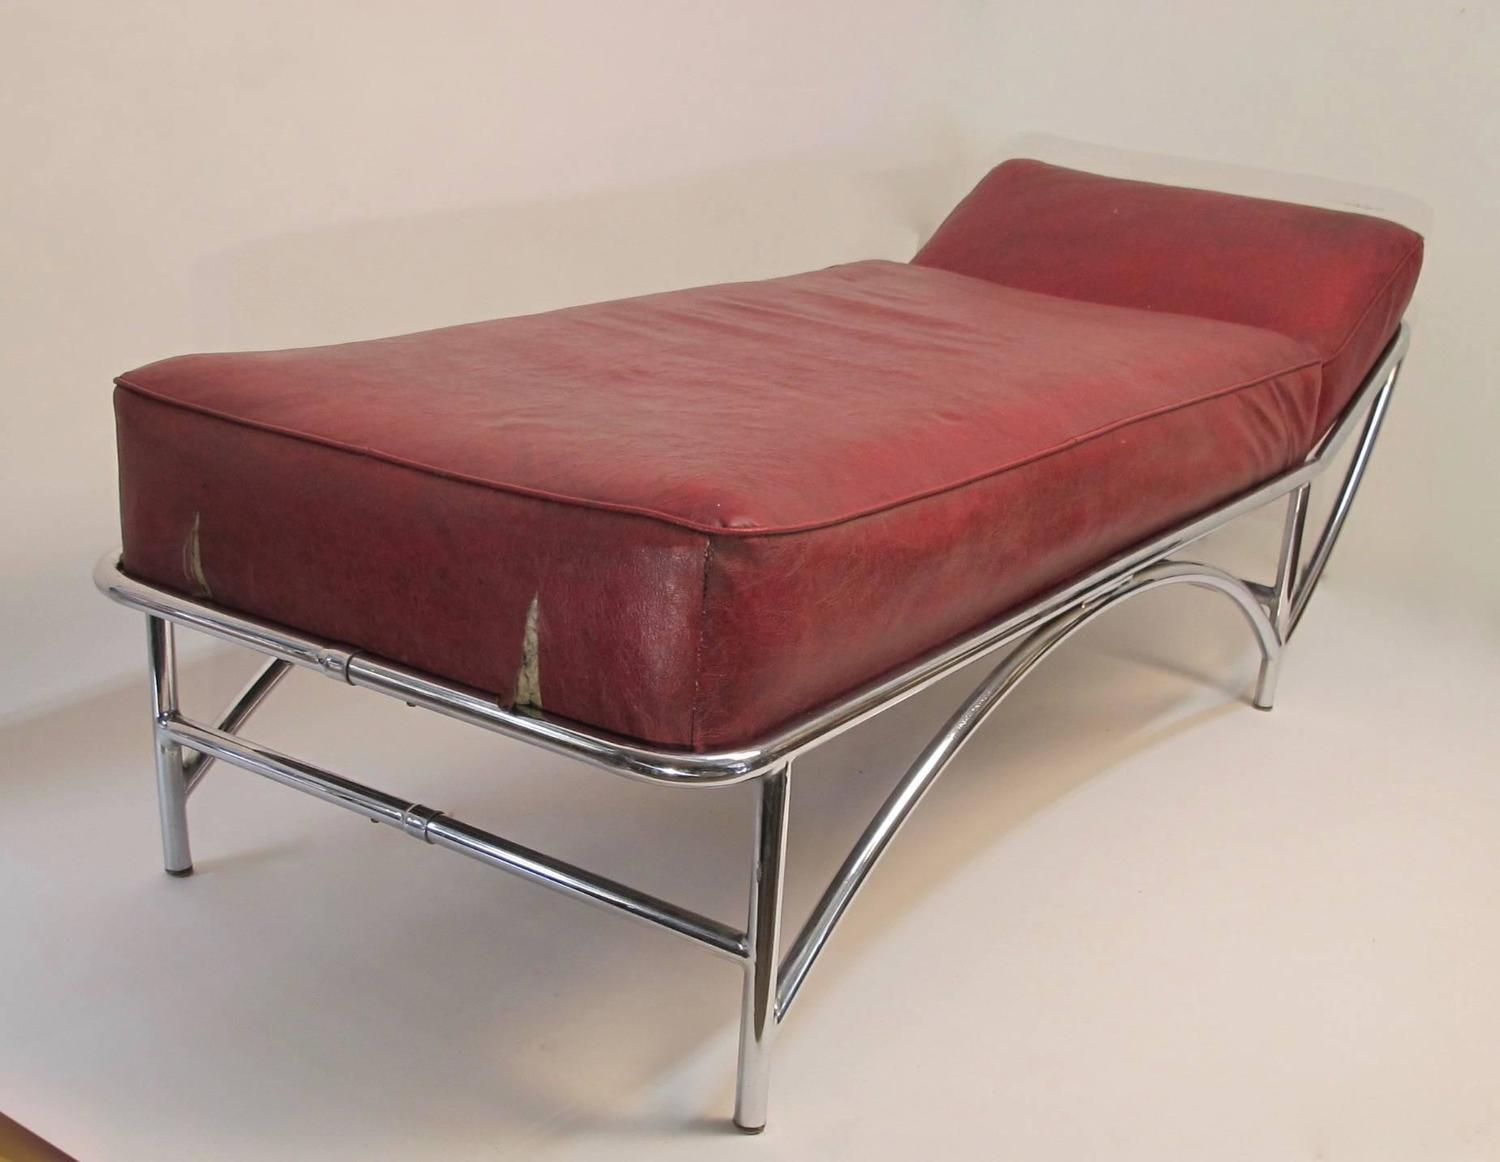 Kem weber art deco chaise daybed for sale at 1stdibs for Art deco chaise longue